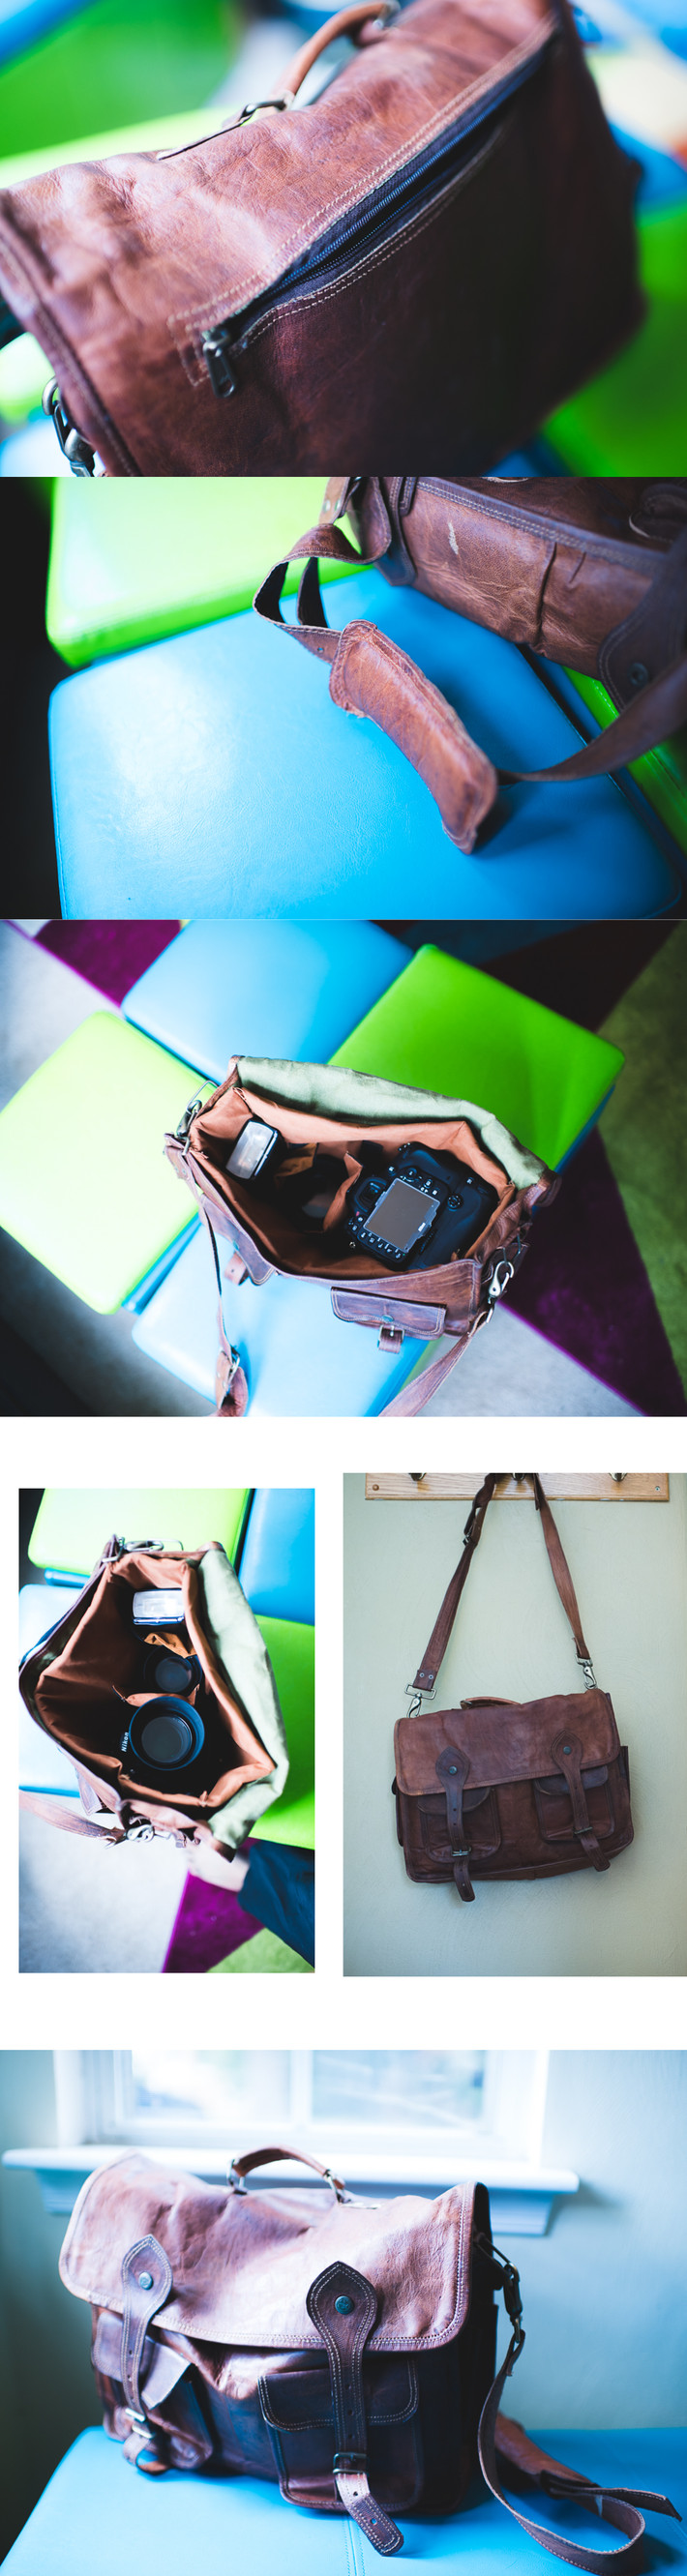 Want a really cute genuine leather handmade dslr camera bag for under 100?  I have just the thing...